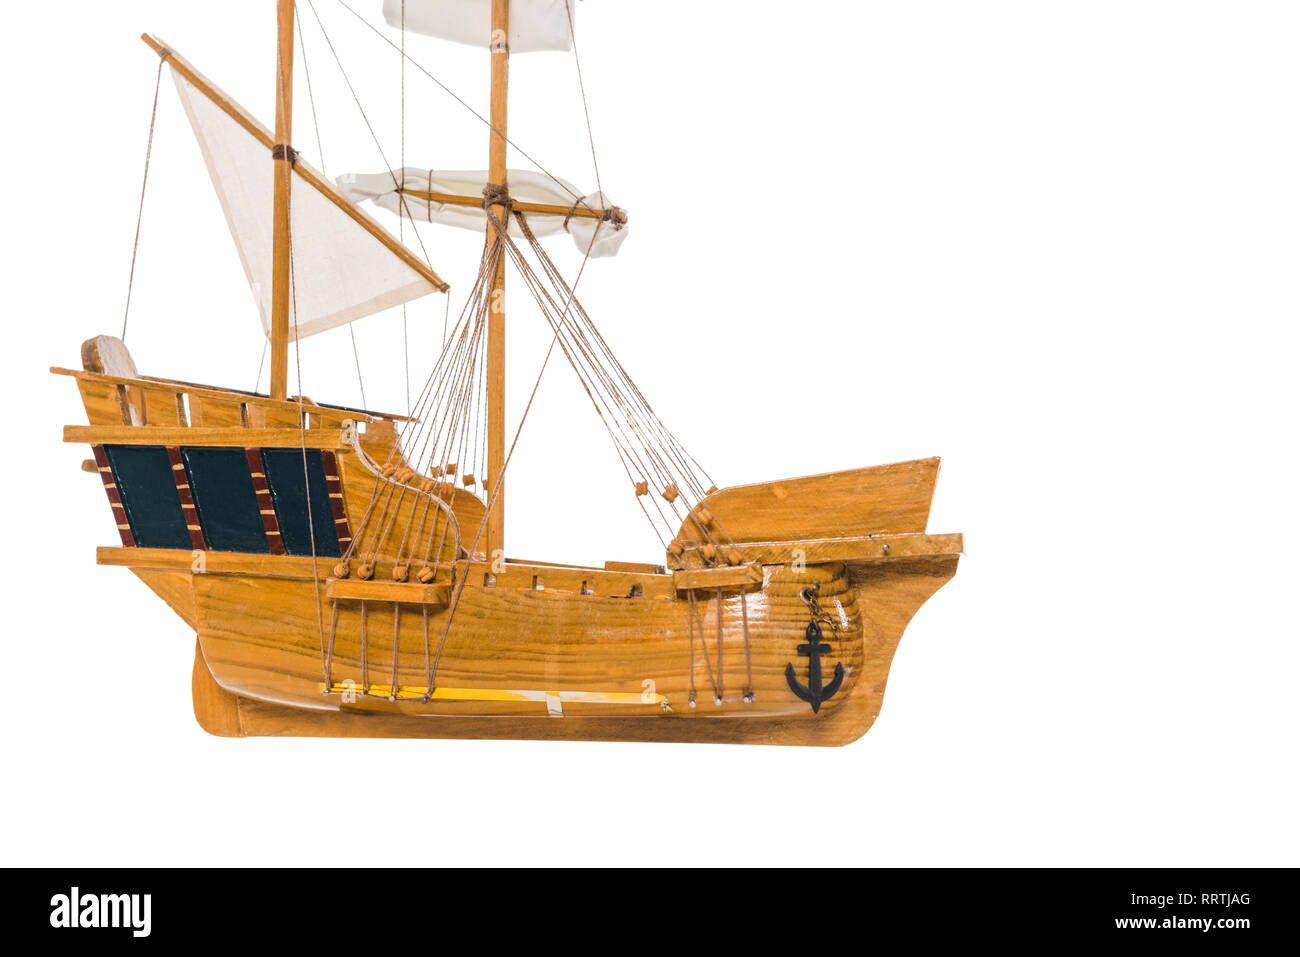 vintage wooden ship model floating in air isolated on white - Stock Image